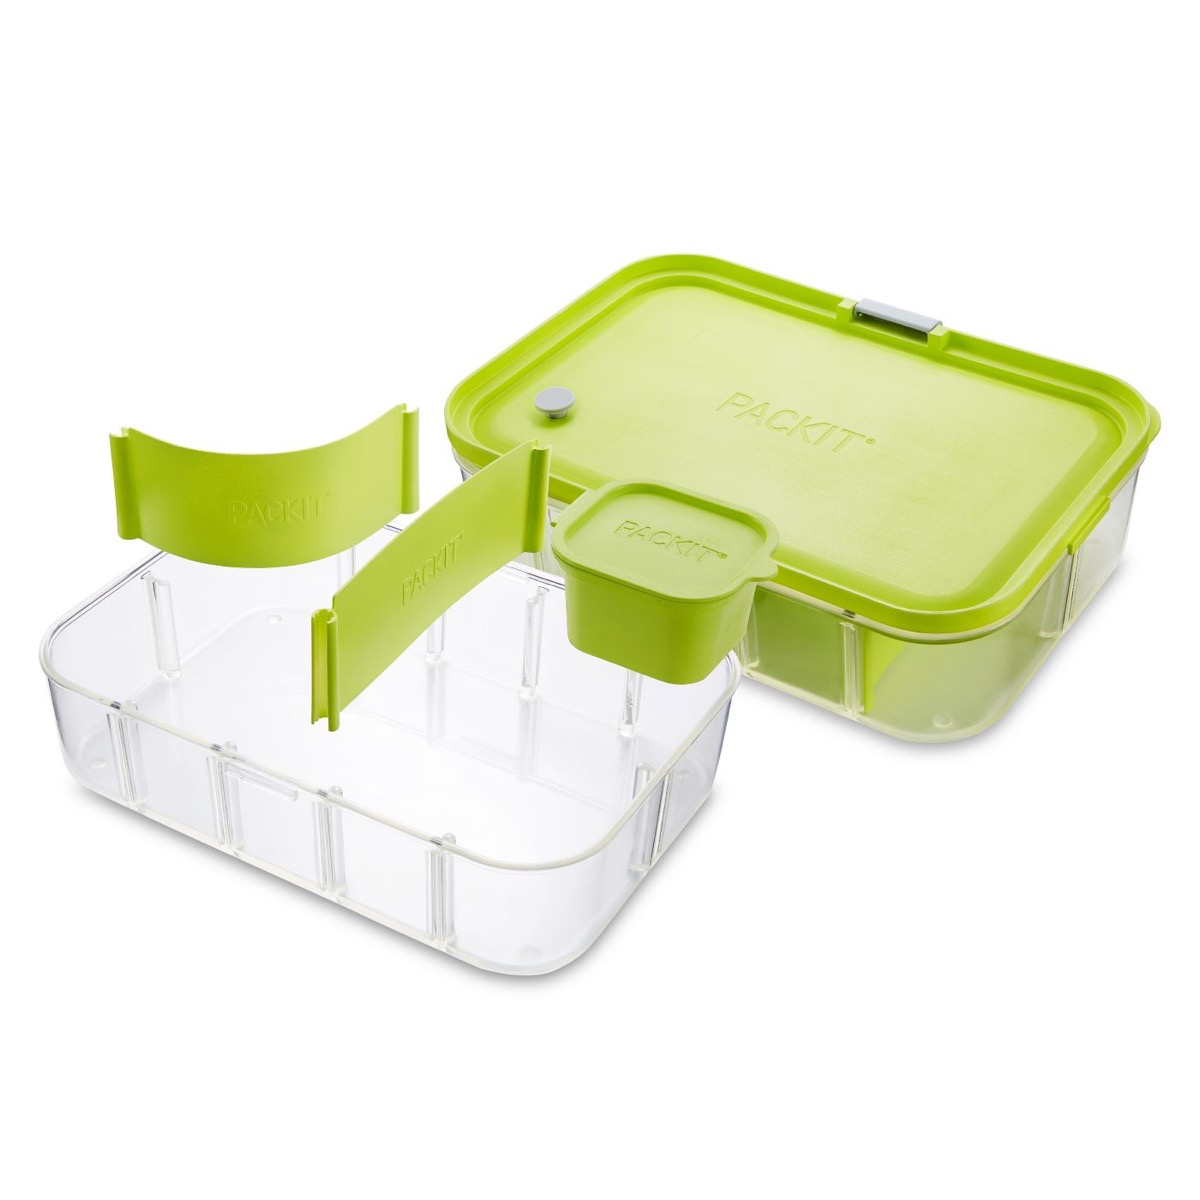 green and clear boxes for food storage, cheap meal prep containers